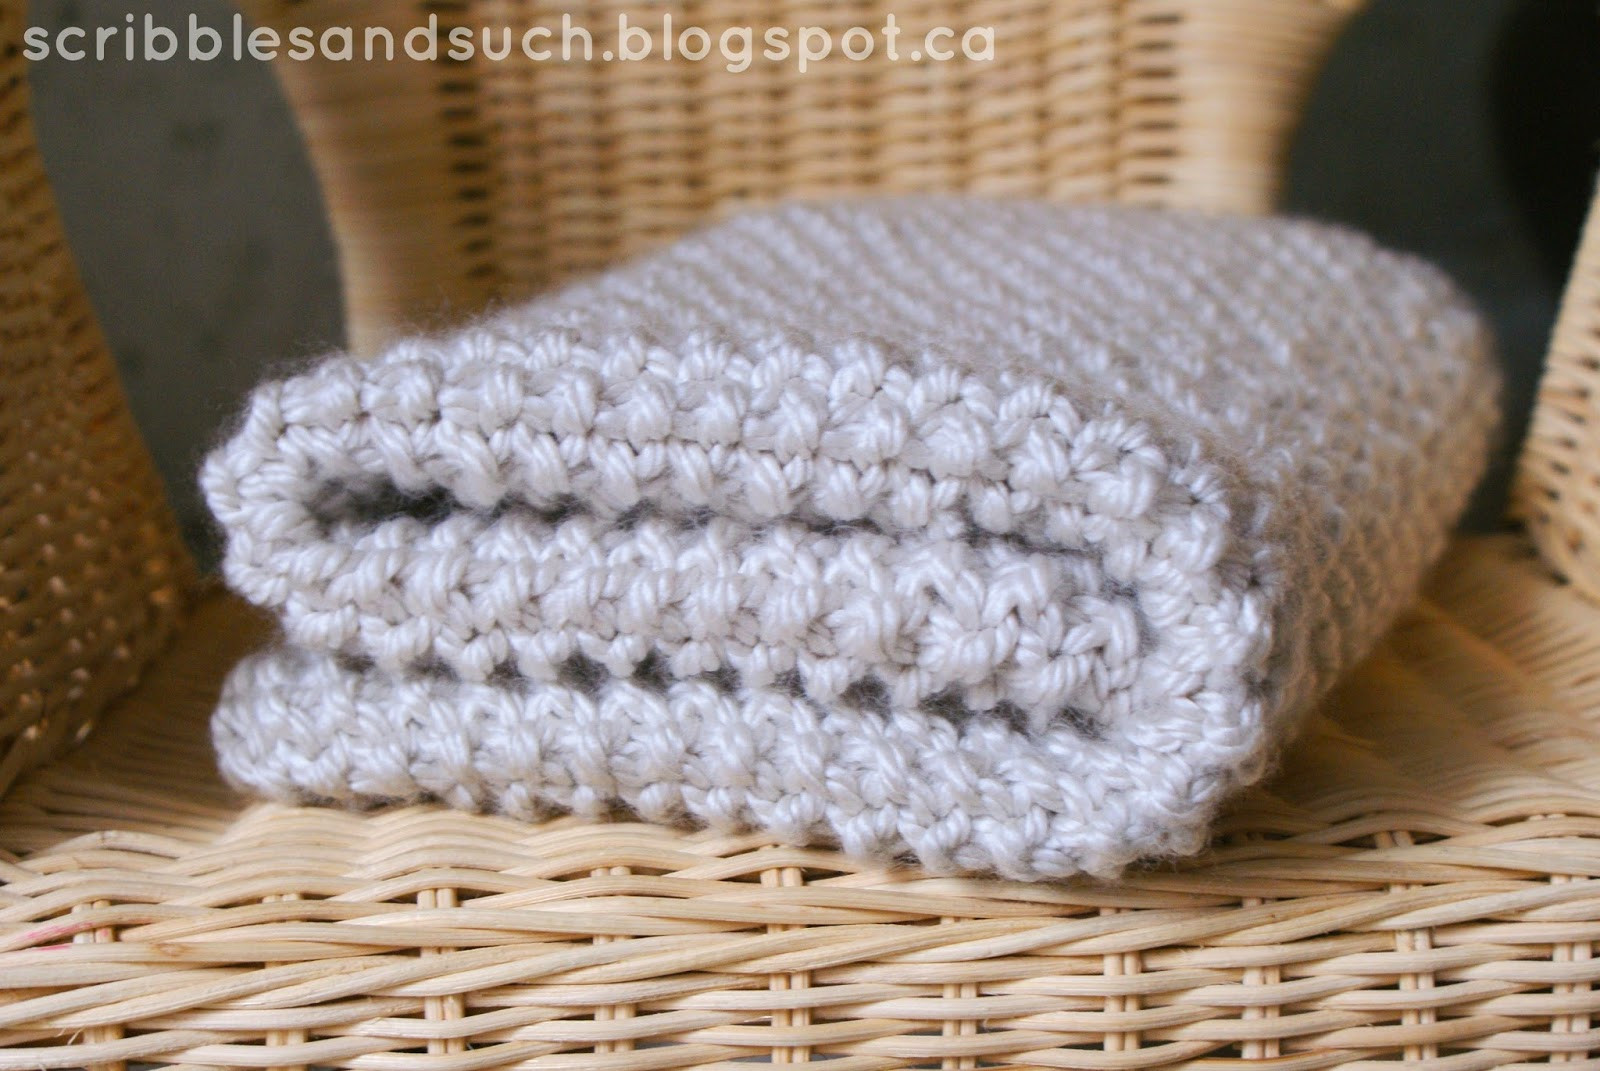 Chunky Knit Baby Blanket Awesome Scribbles & Such Chunky Knitted Baby Blanket Of Gorgeous 41 Pictures Chunky Knit Baby Blanket